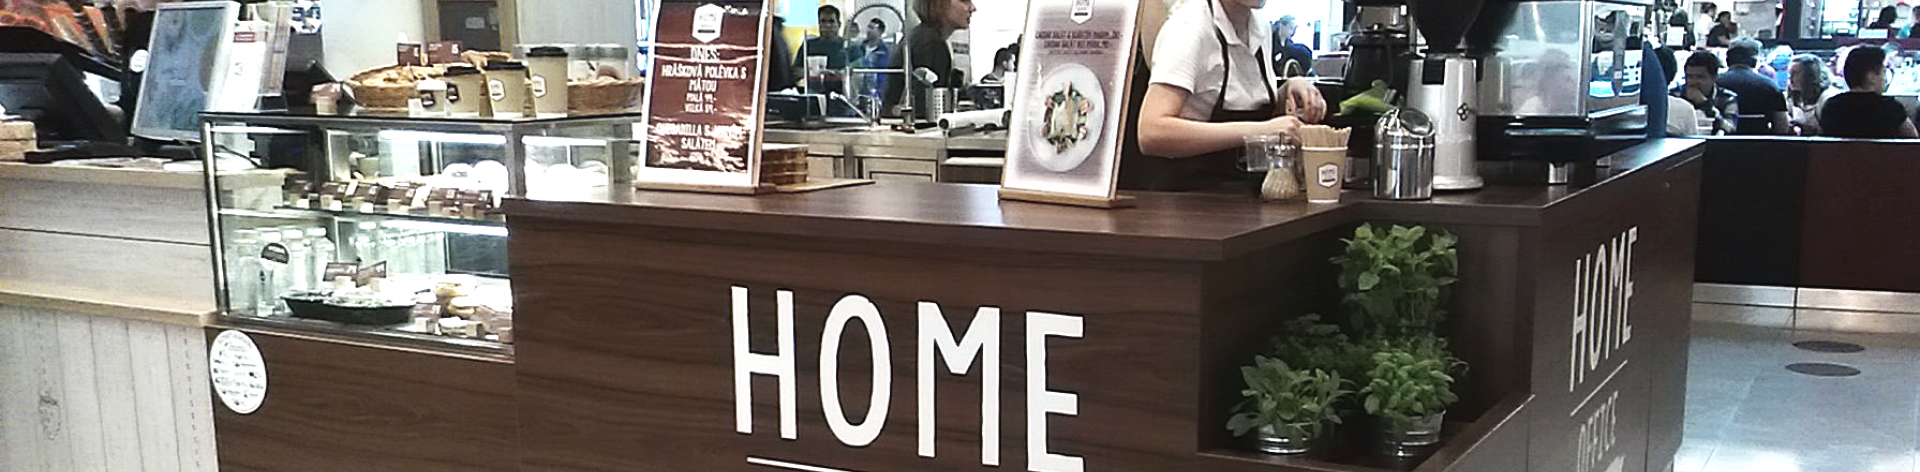 HOME OFFICE Bistro & Coffee